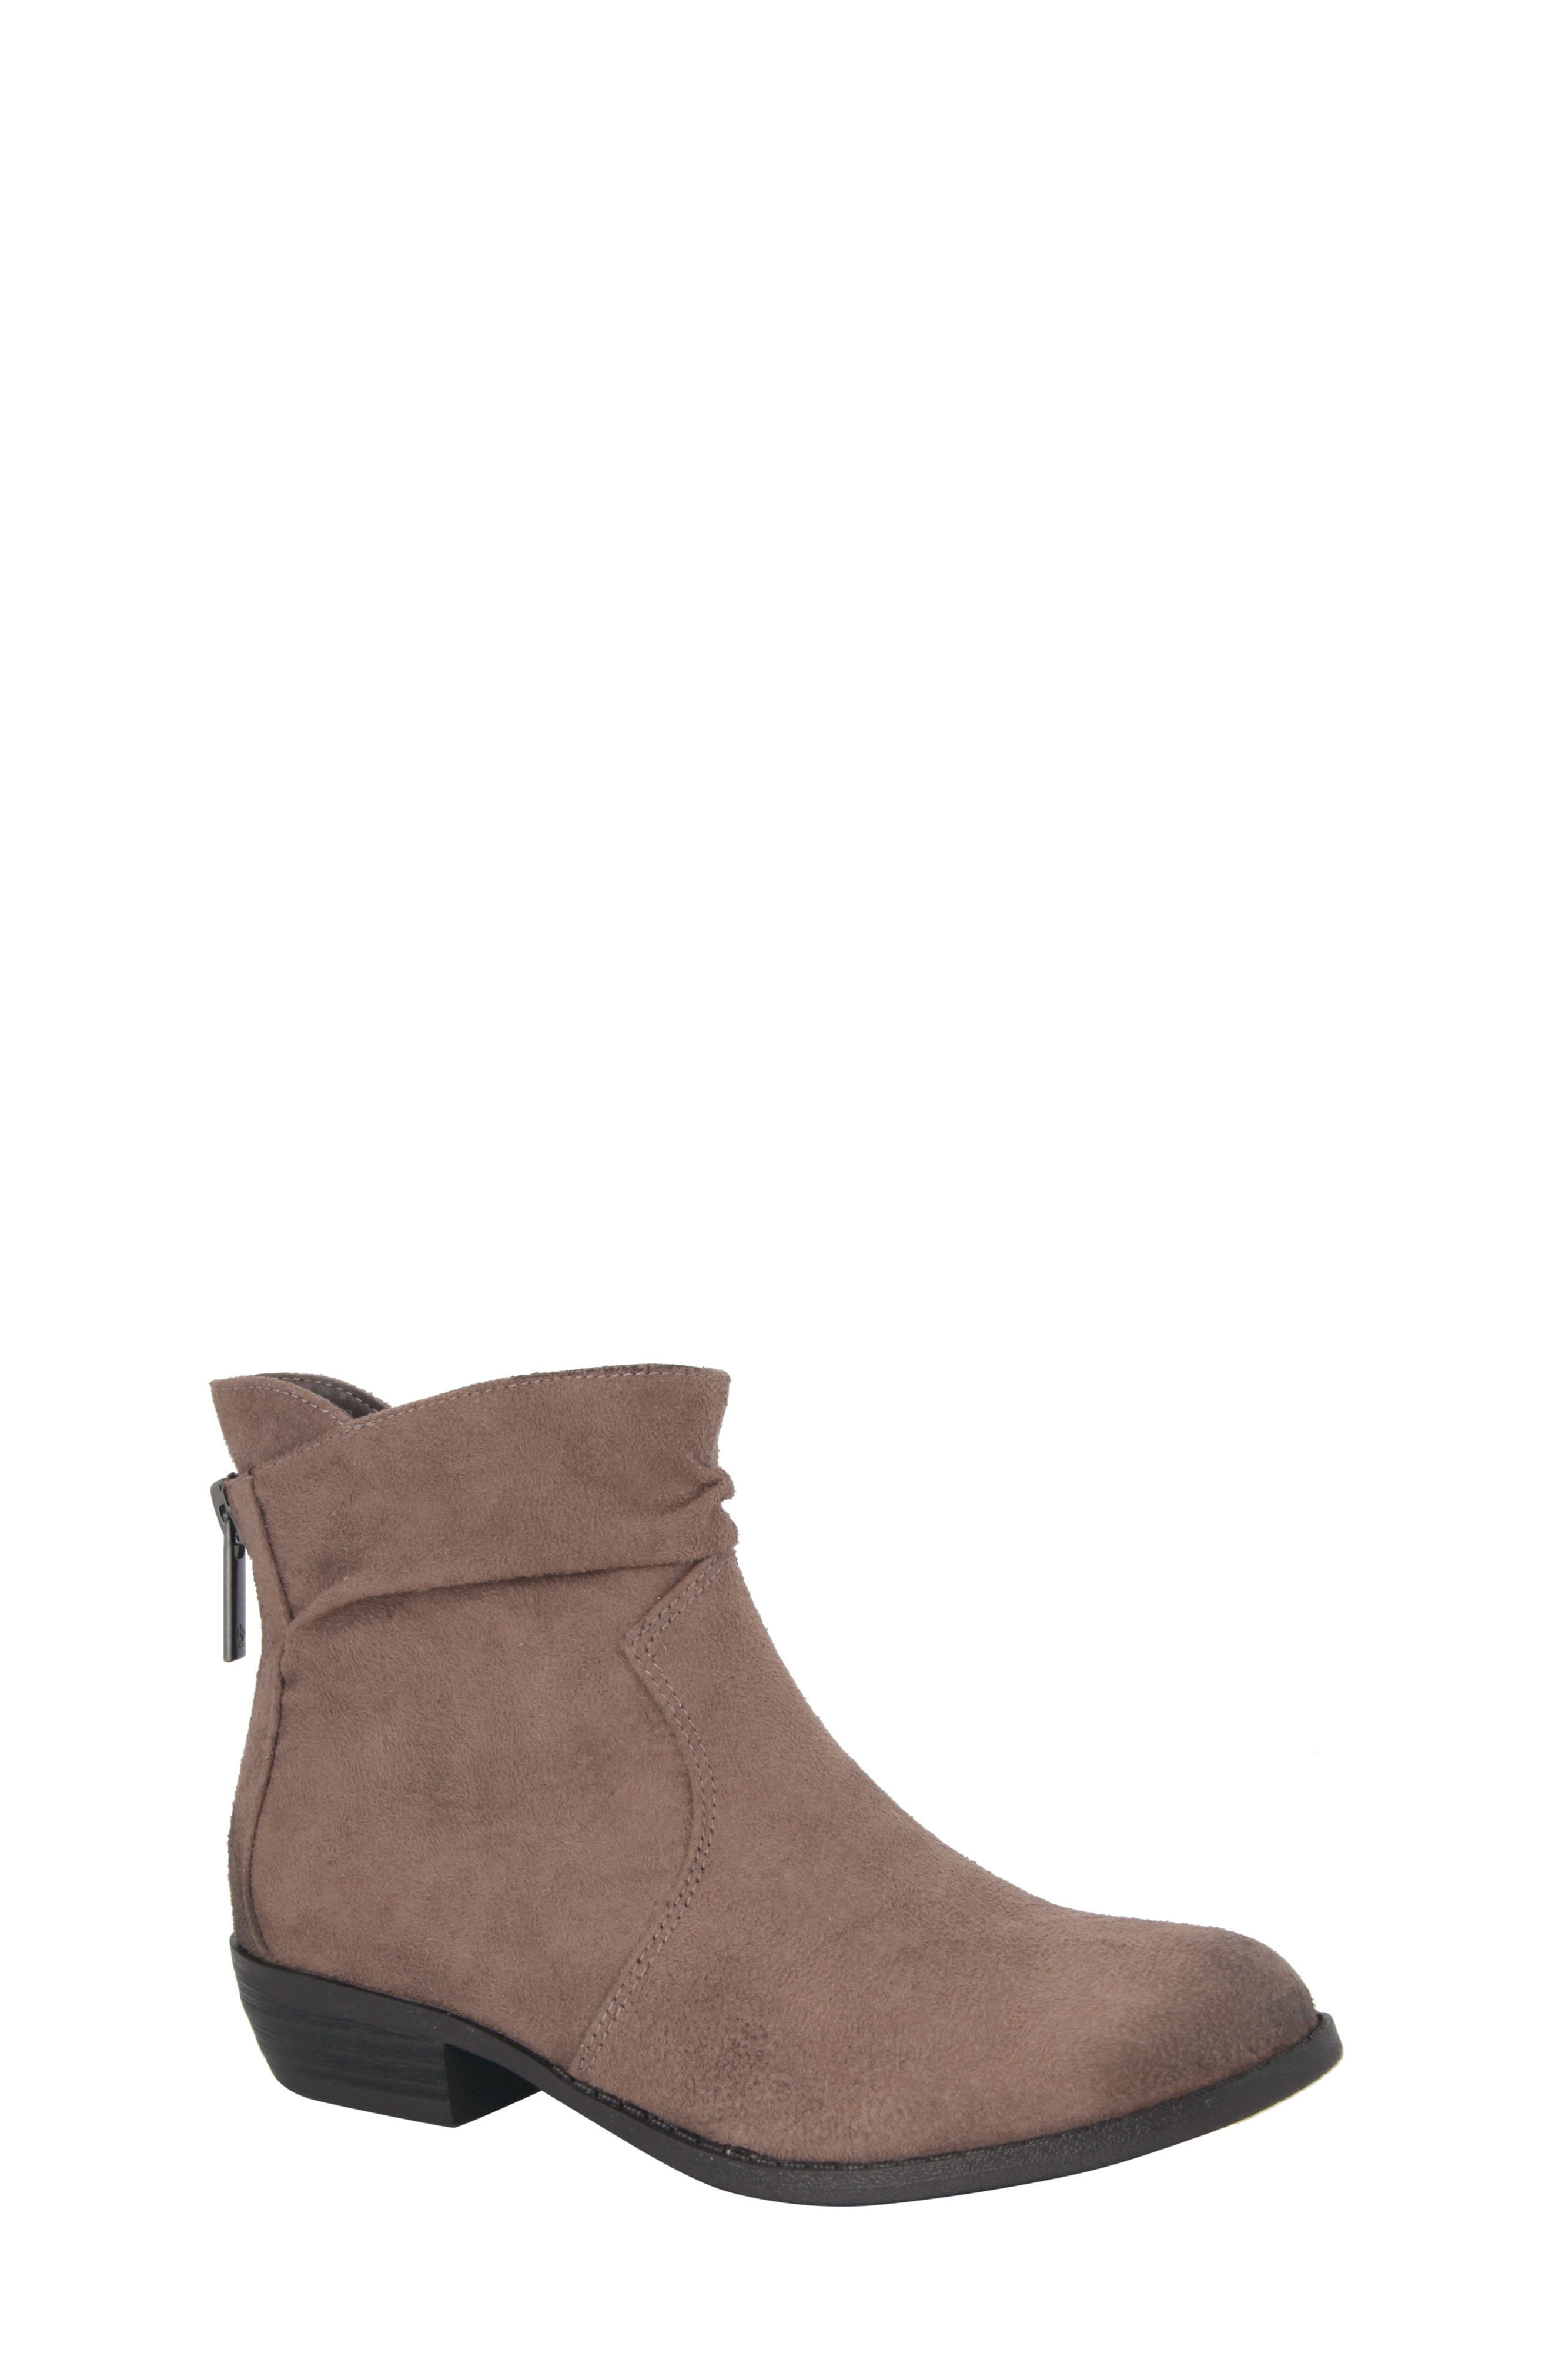 Delia Slightly Slouchy Bootie,                             Main thumbnail 1, color,                             Taupe Microsuede